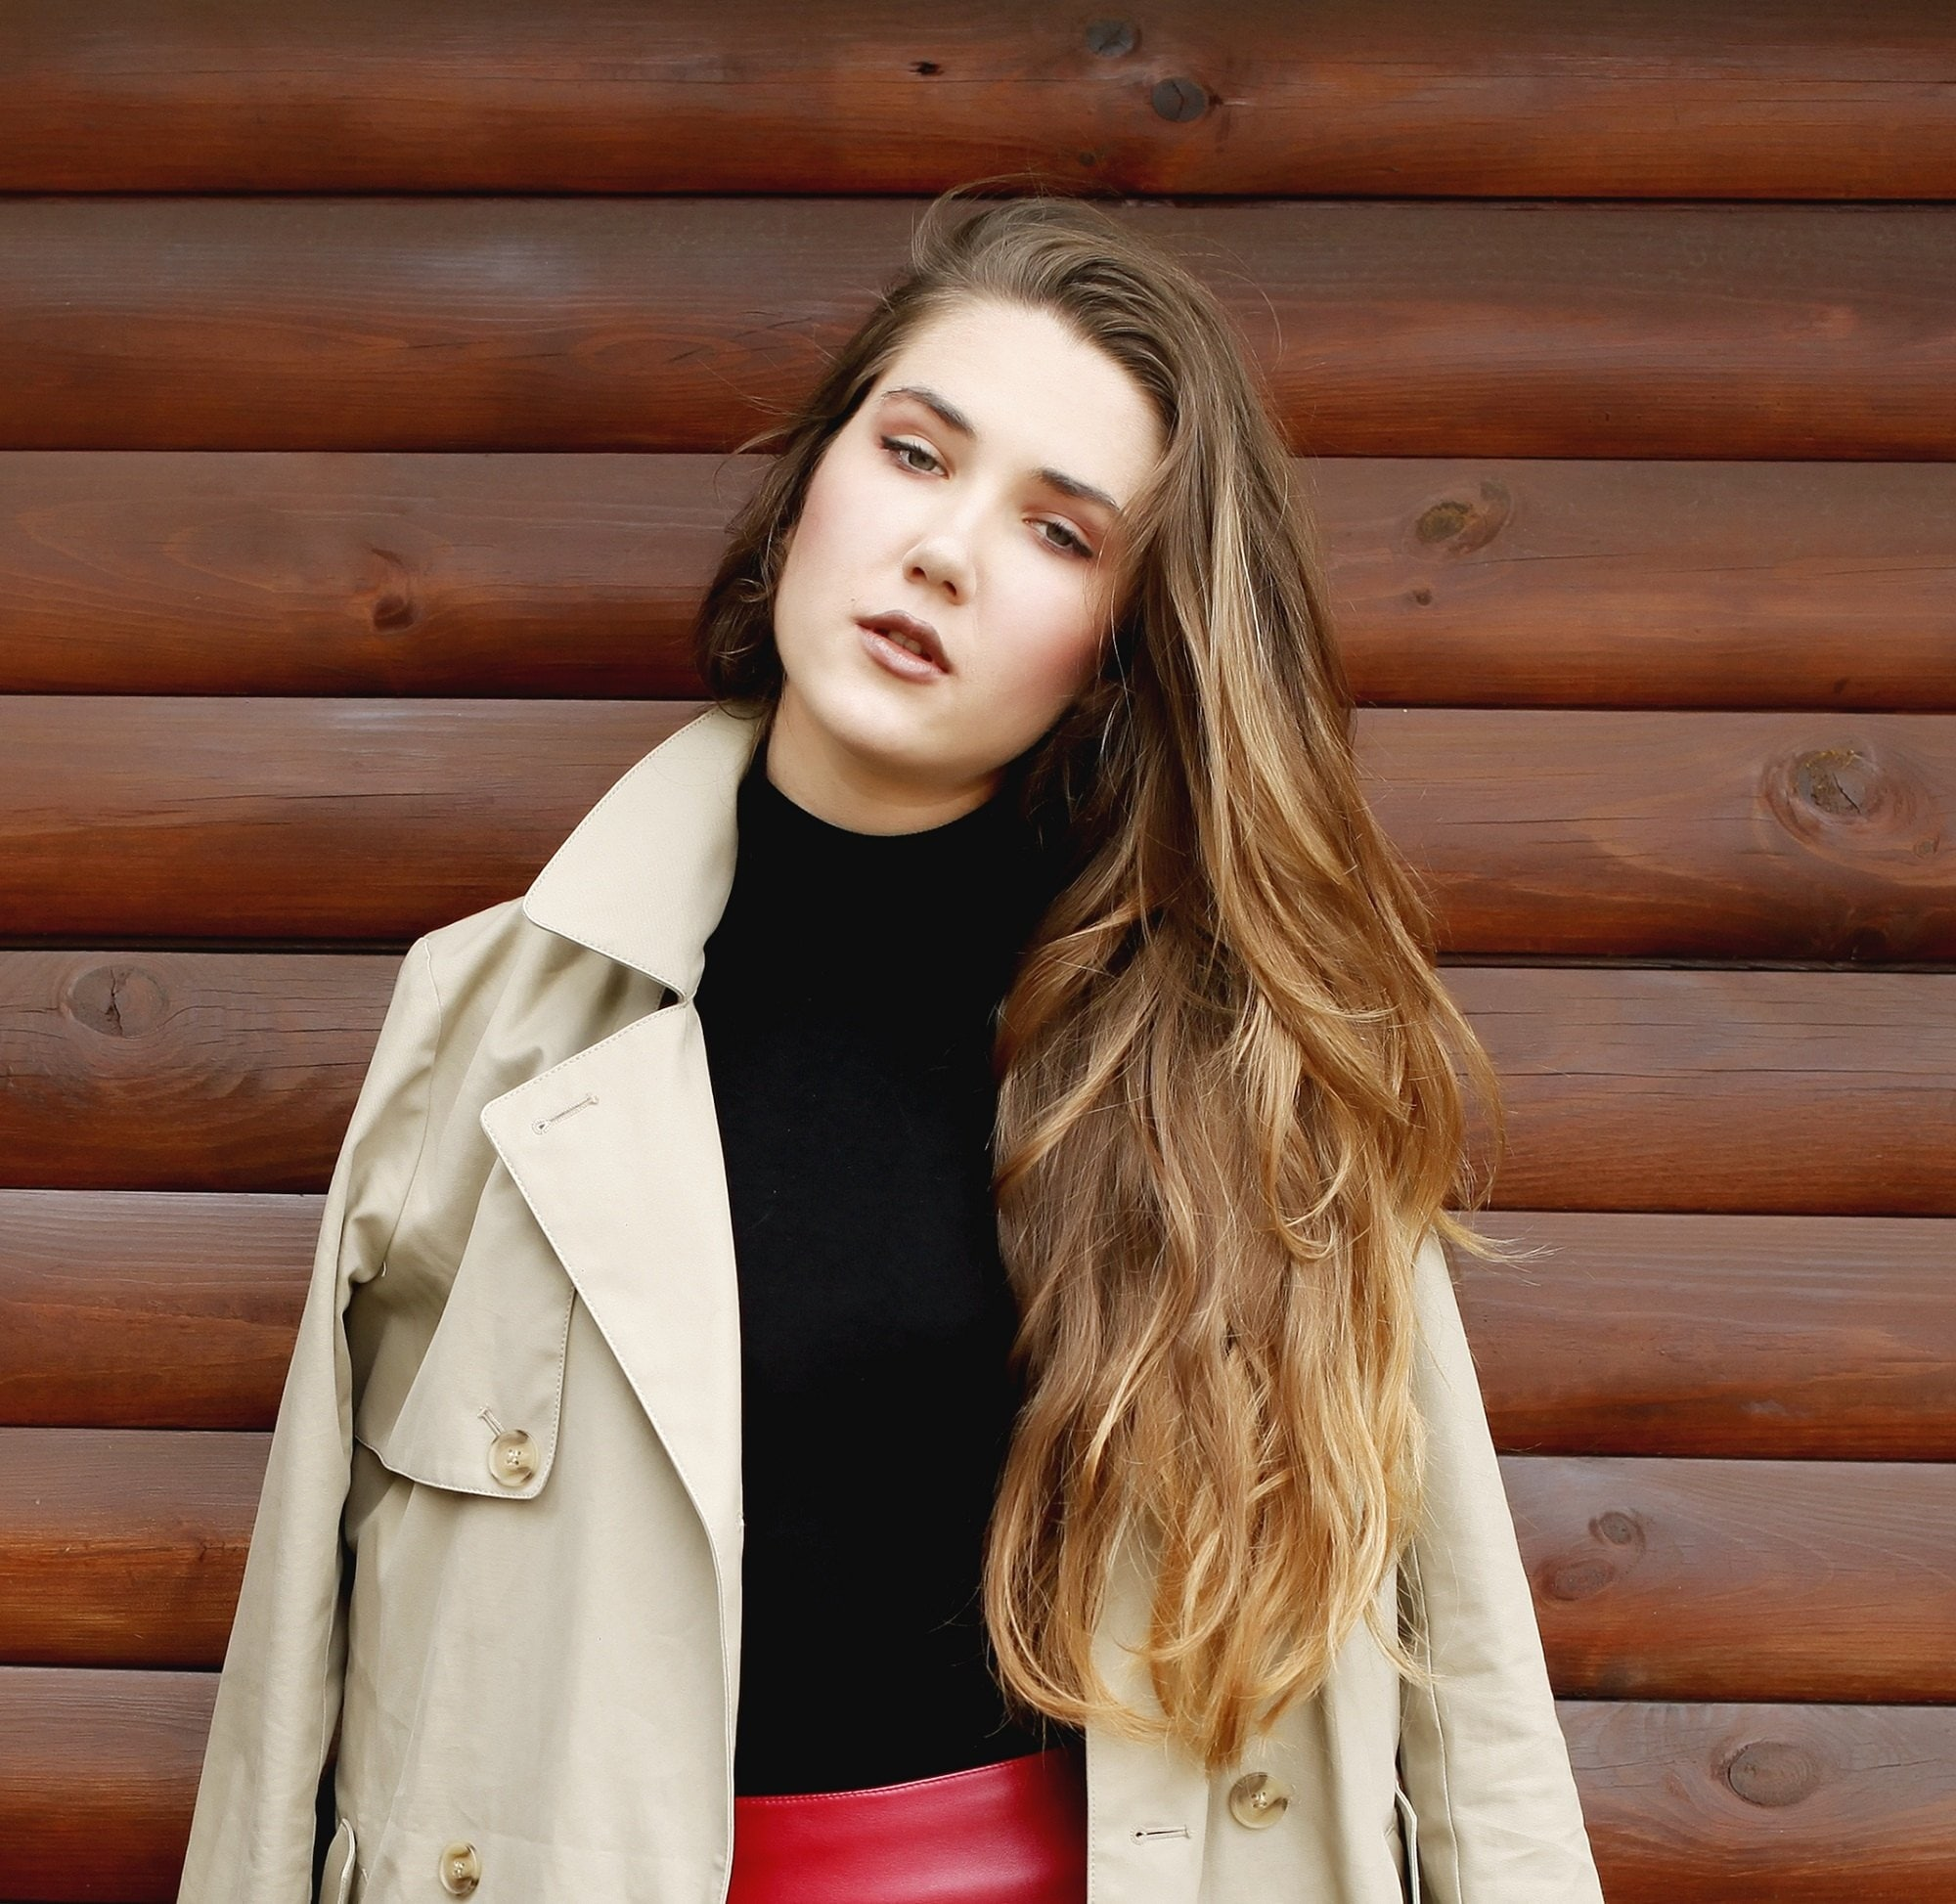 Hair color for fair skin: White woman with long bronde ombre hair wearing a coat against a wooden wall outdoors